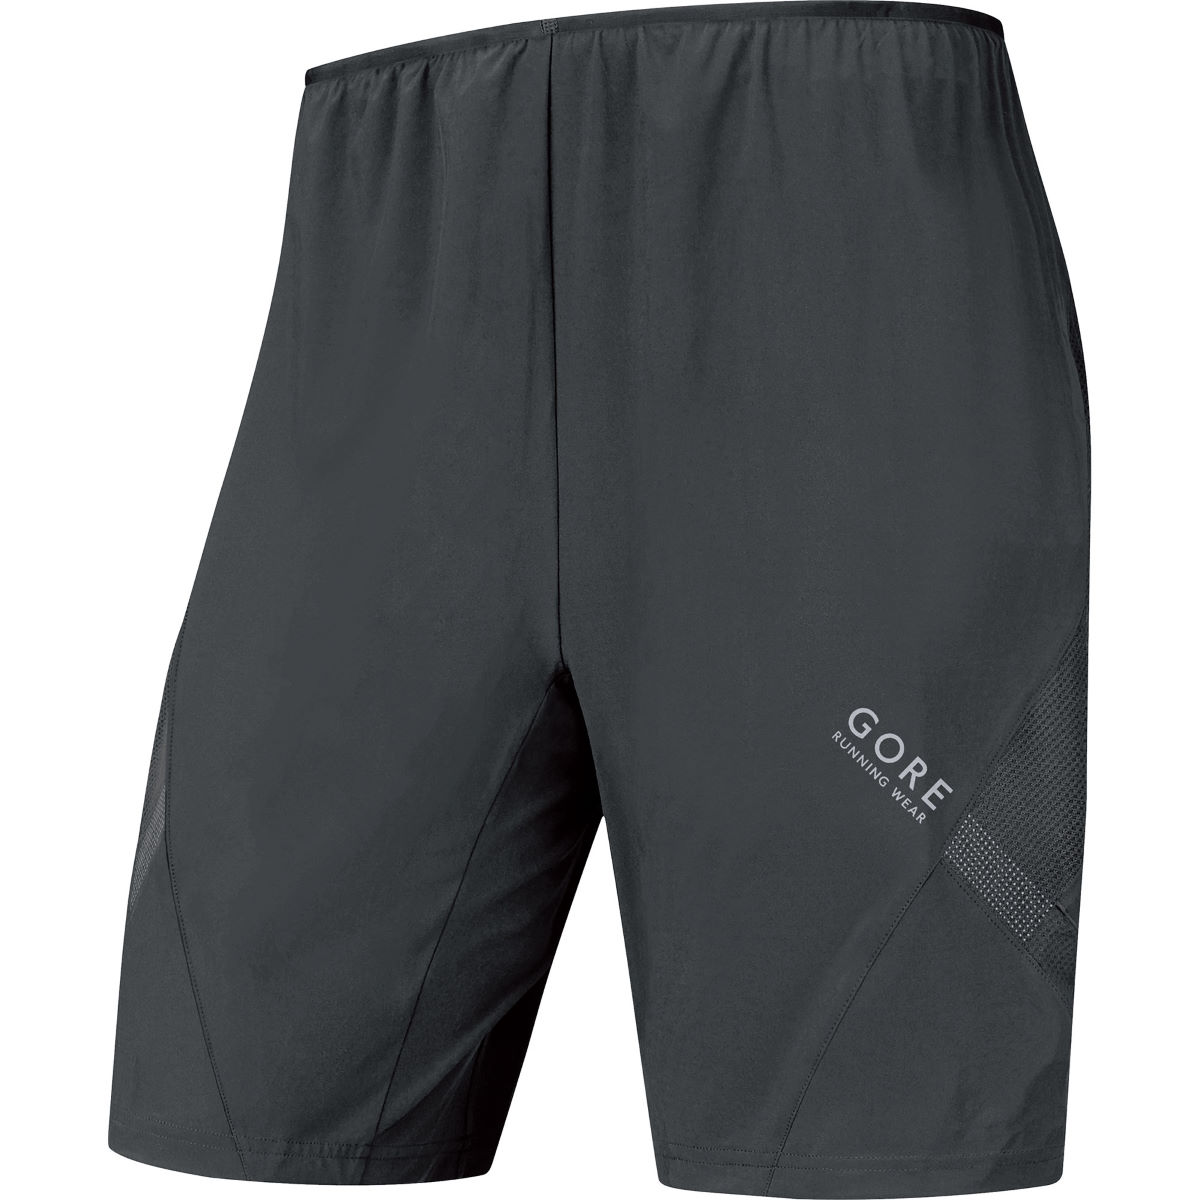 Short Gore Running Wear Air (2 en 1) - XXL black Shorts de running